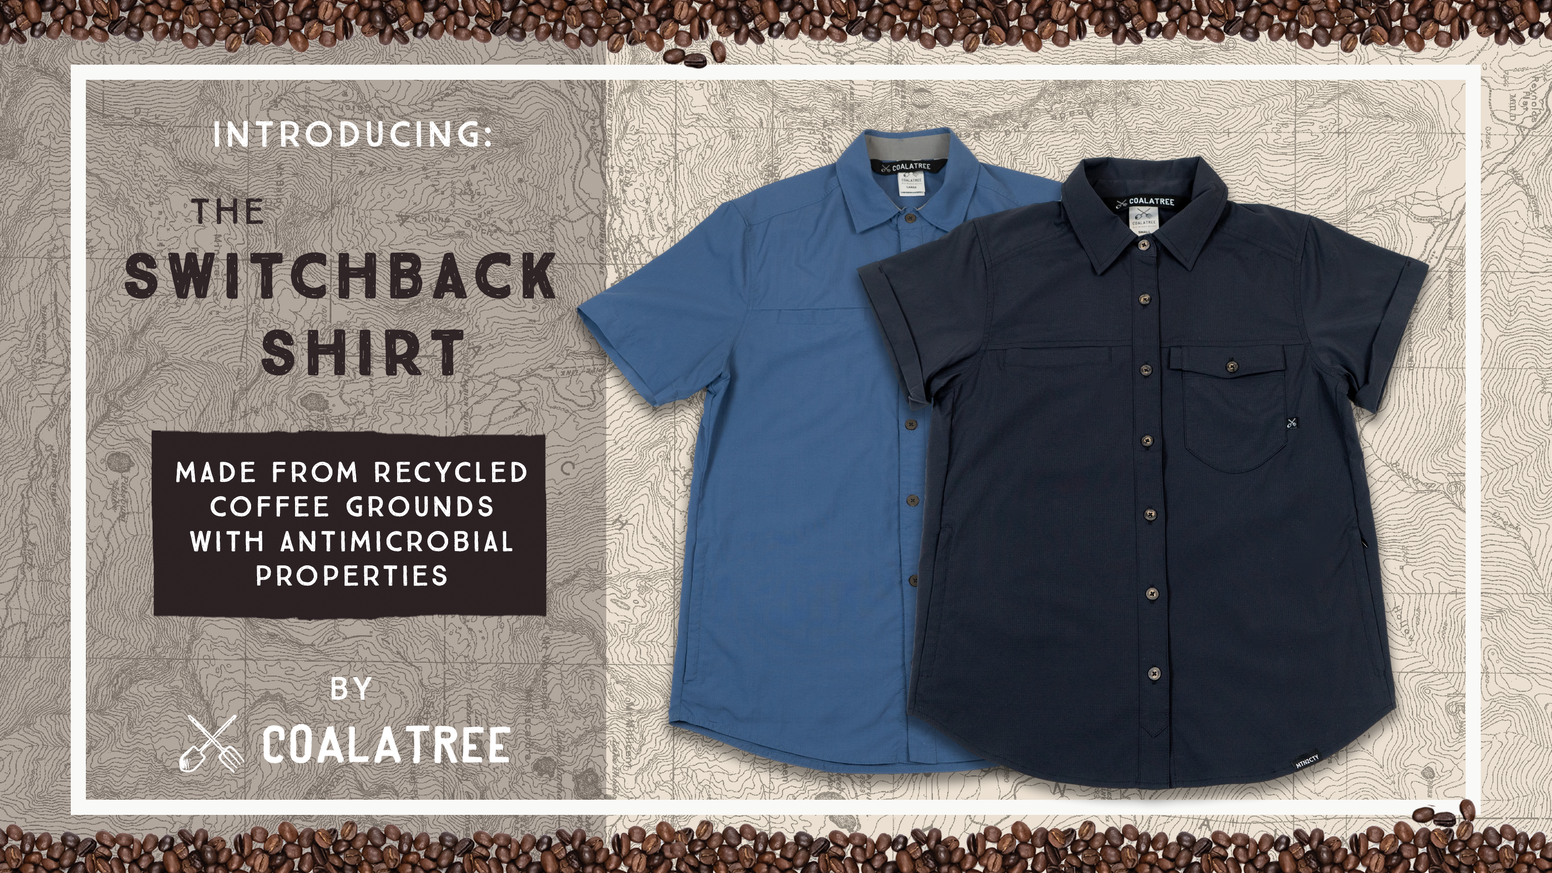 Spent coffee grounds are mixed and melted down with recycled plastic bottles to create the fibers for our innovative Switchback shirt.